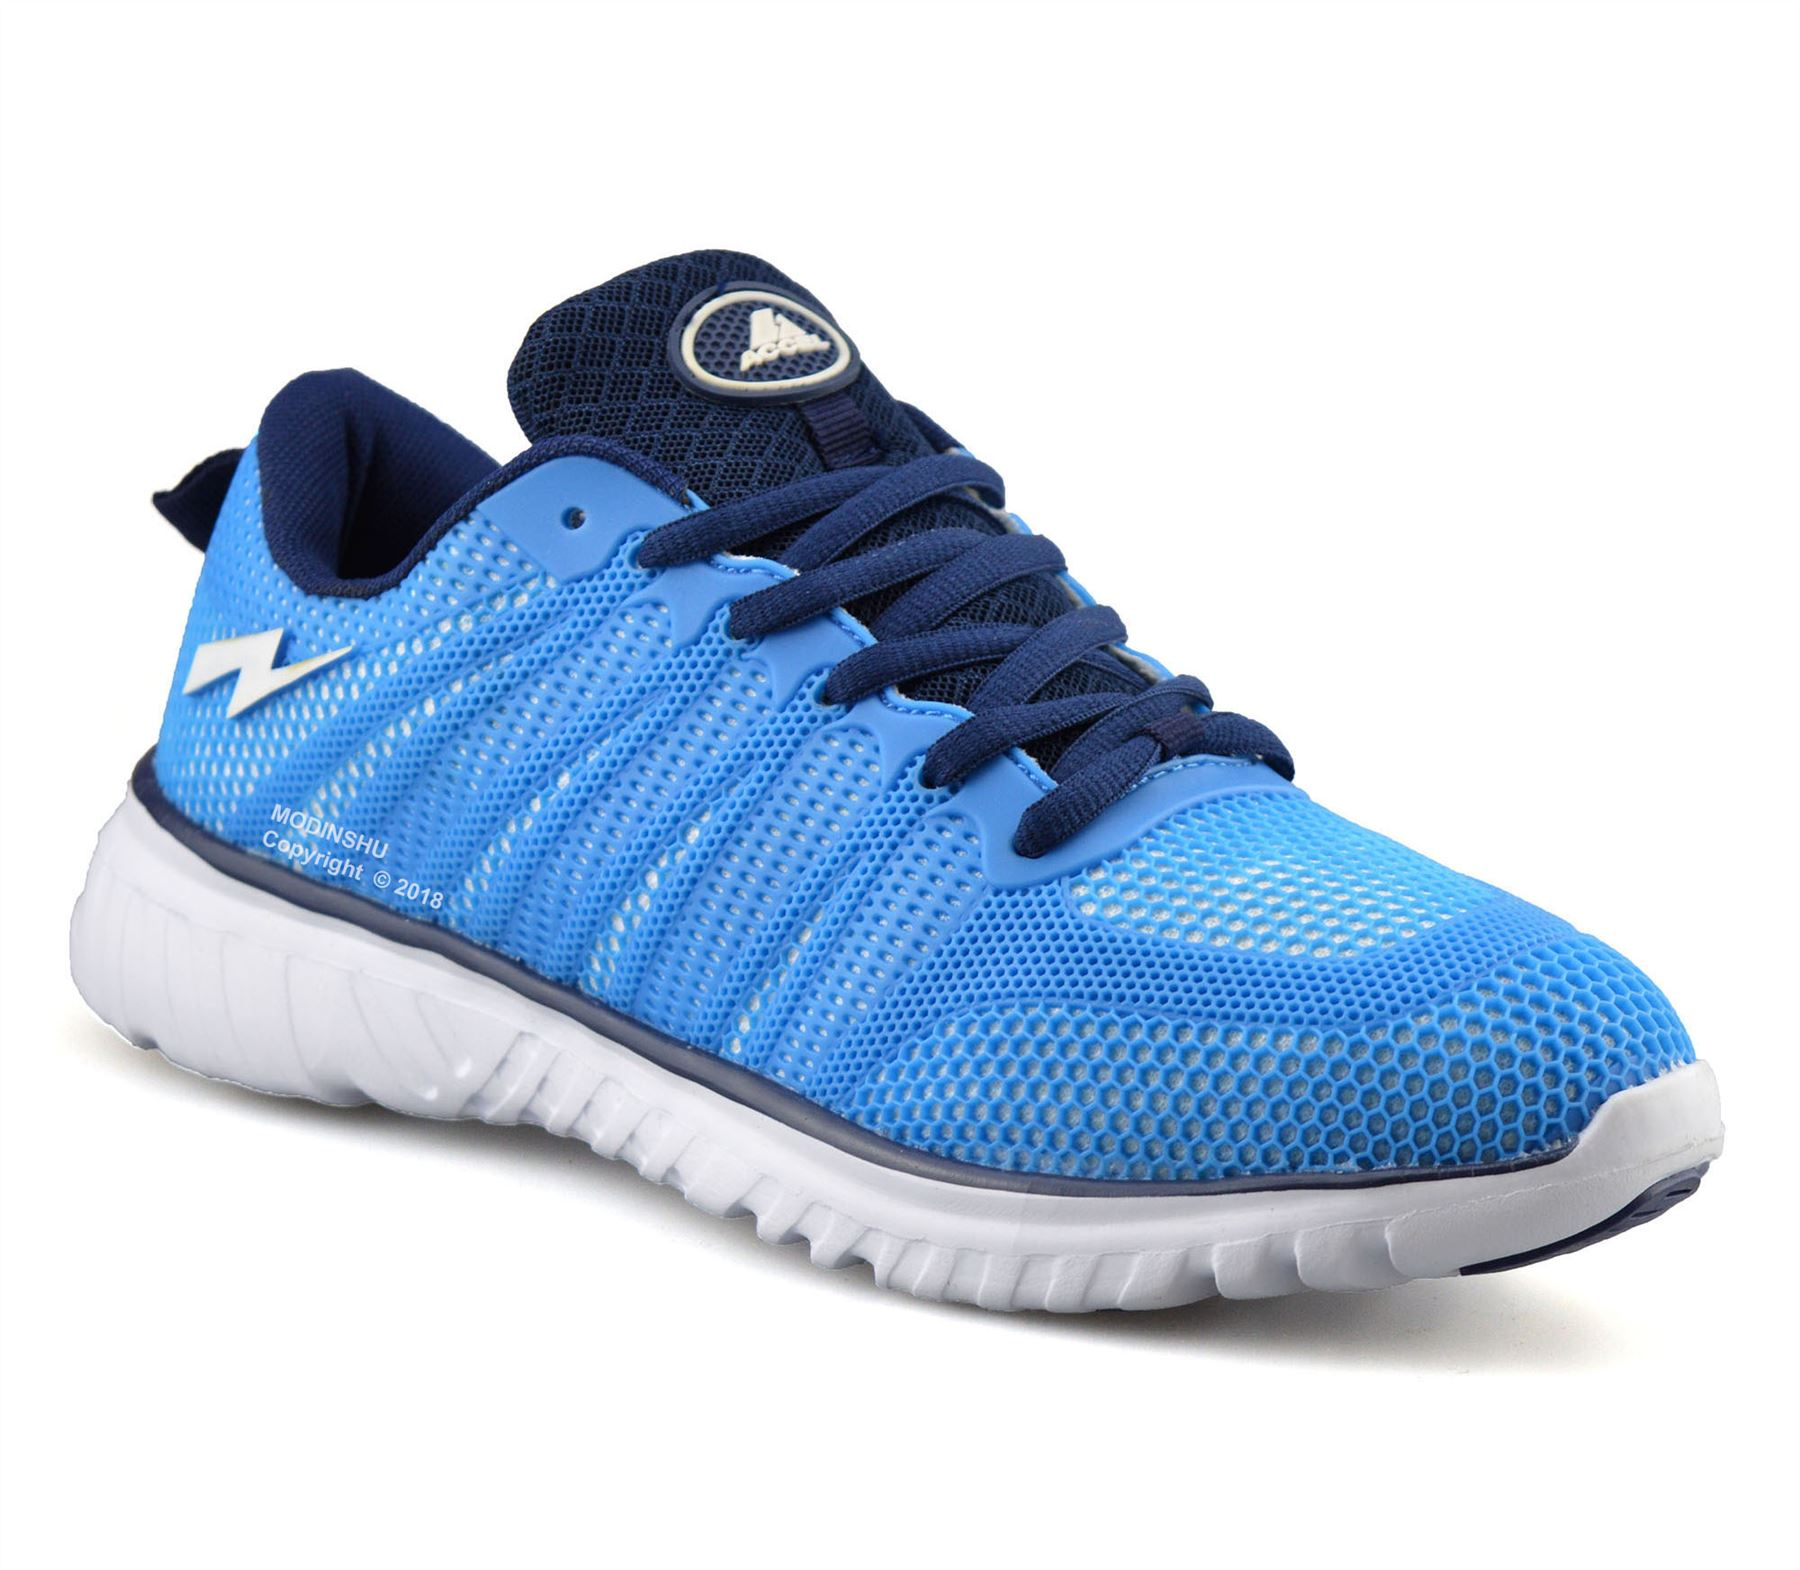 Mens-Casual-Running-Walking-Sports-Gym-Shock-Absorbing-Lace-Trainers-Shoes-Size thumbnail 14